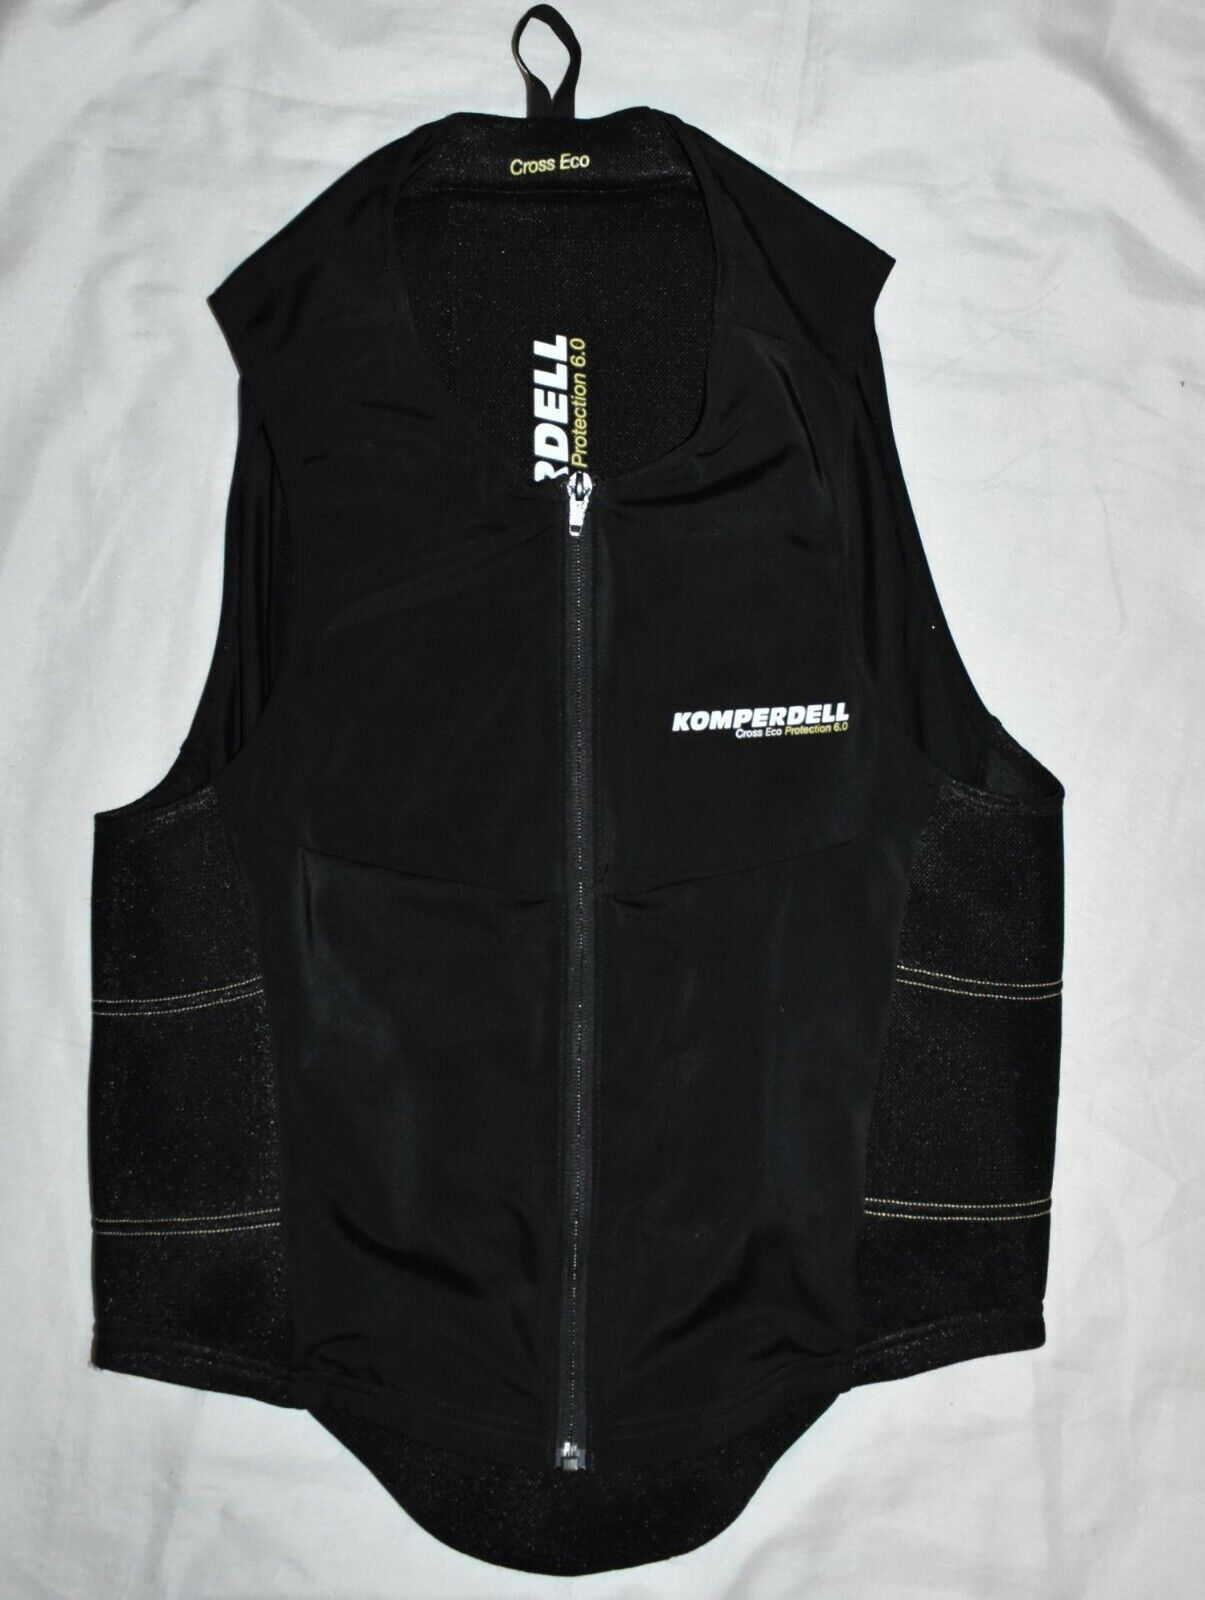 Komperdell Cross Eco Predection Vest Adults size L